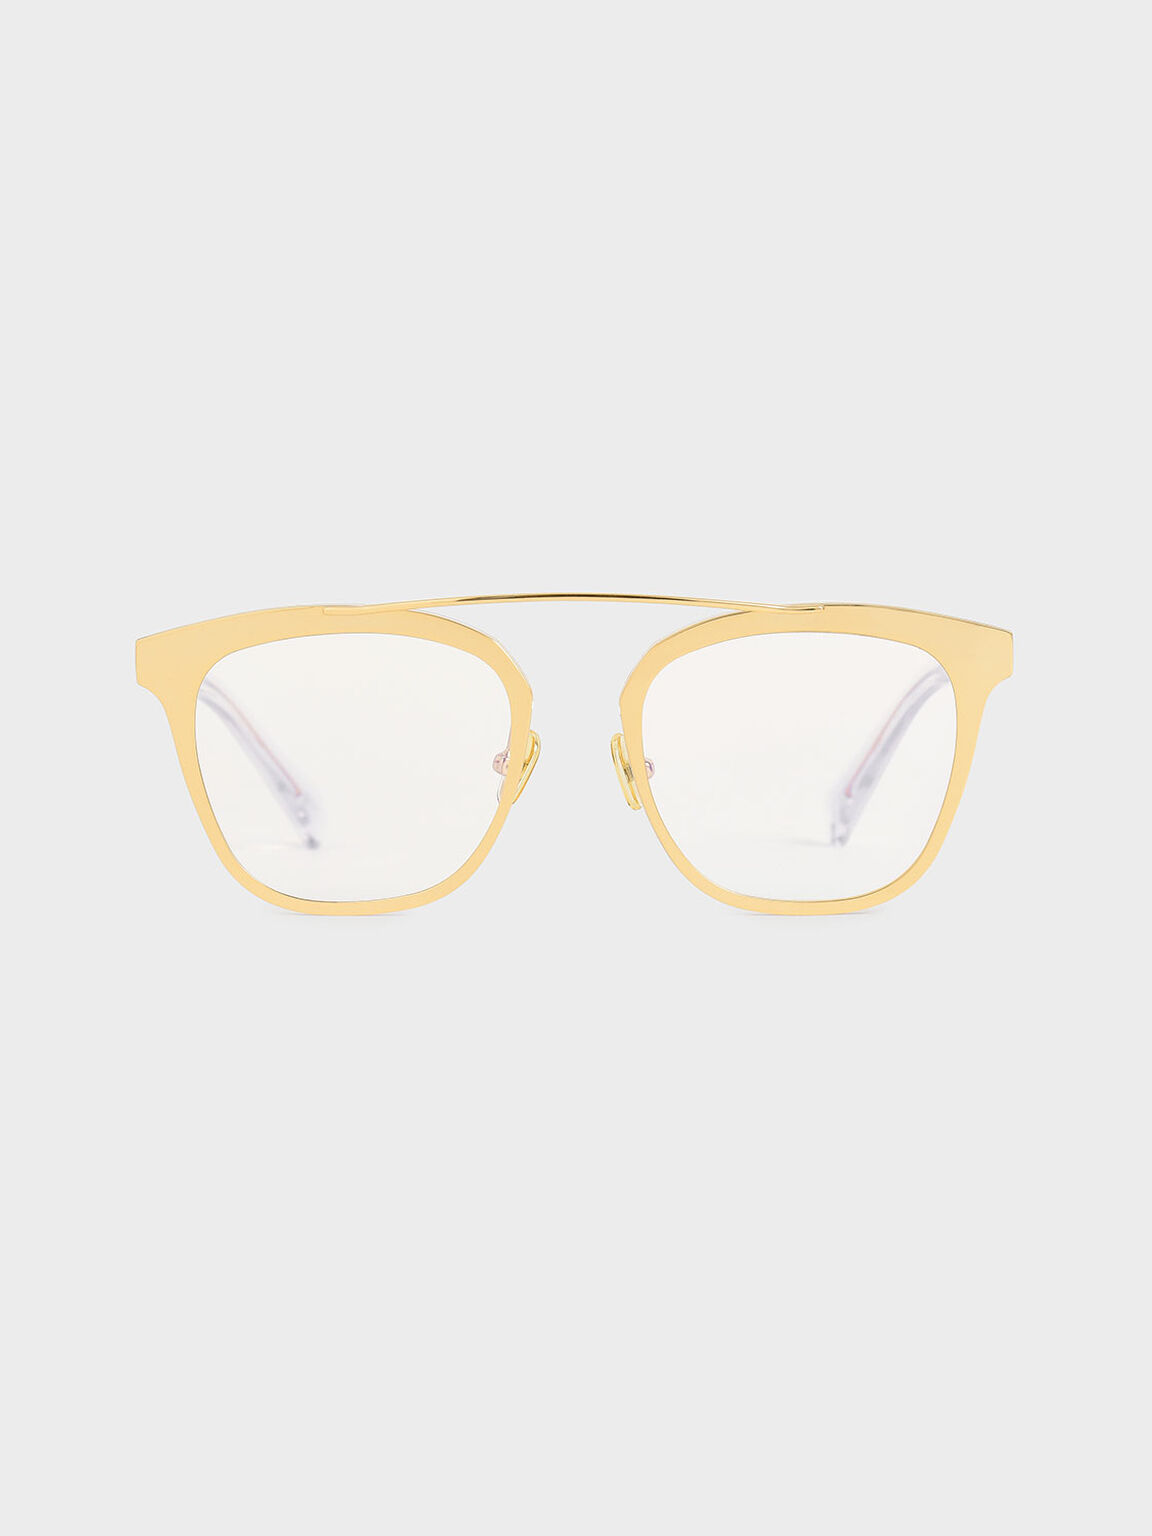 Metal Frame Sunglasses, Gold, hi-res